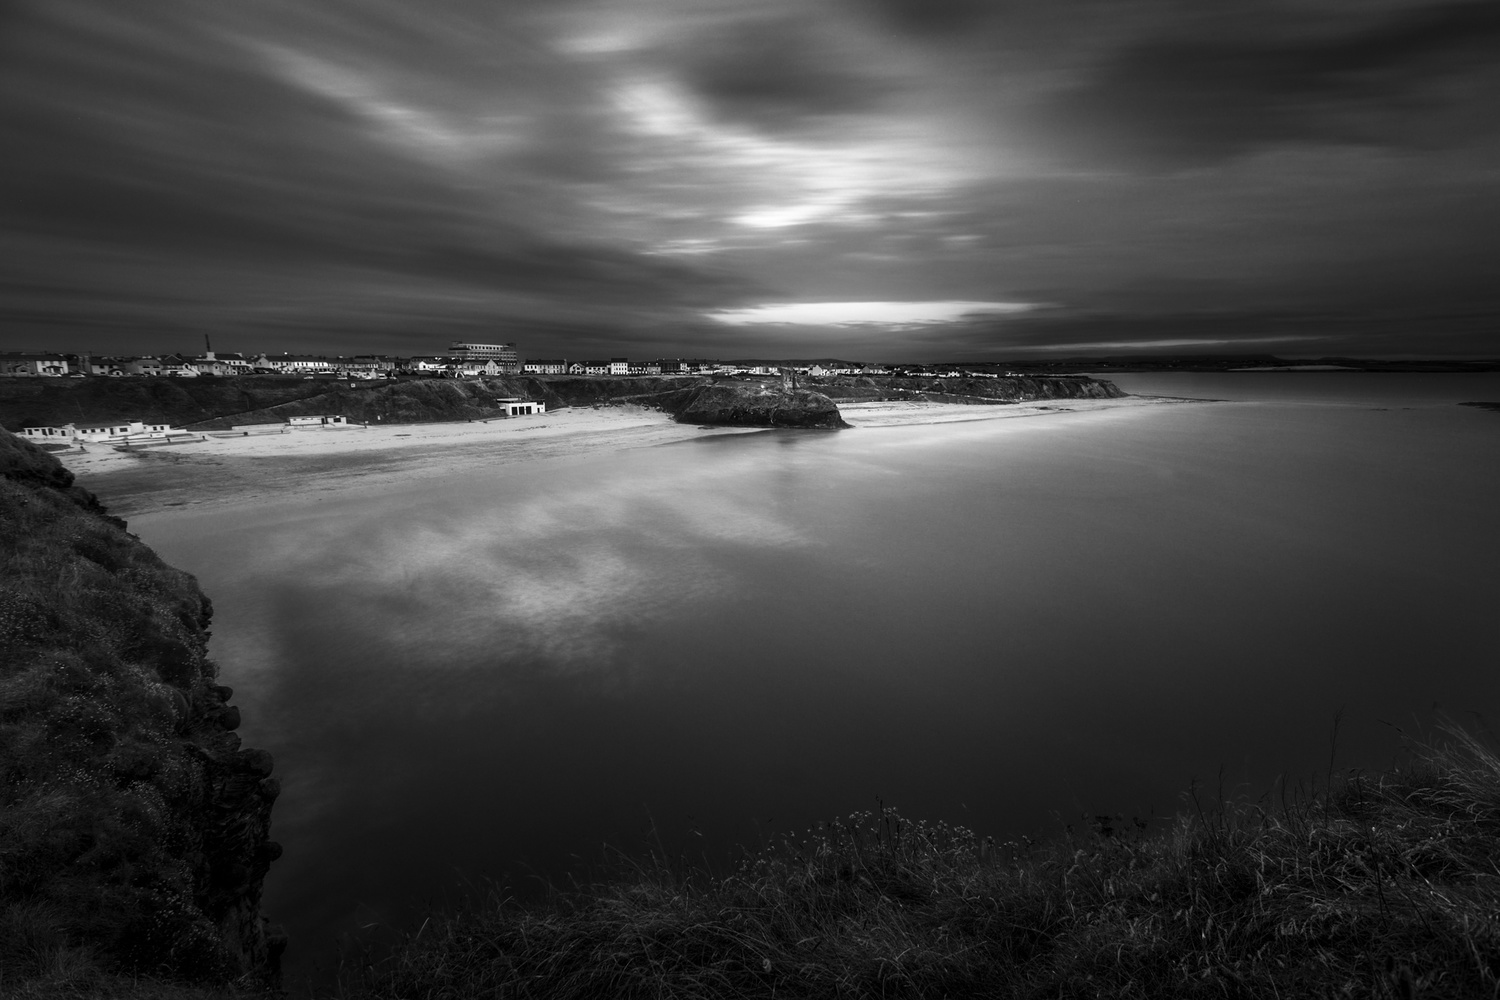 coastal photography in black and white during daylight hours